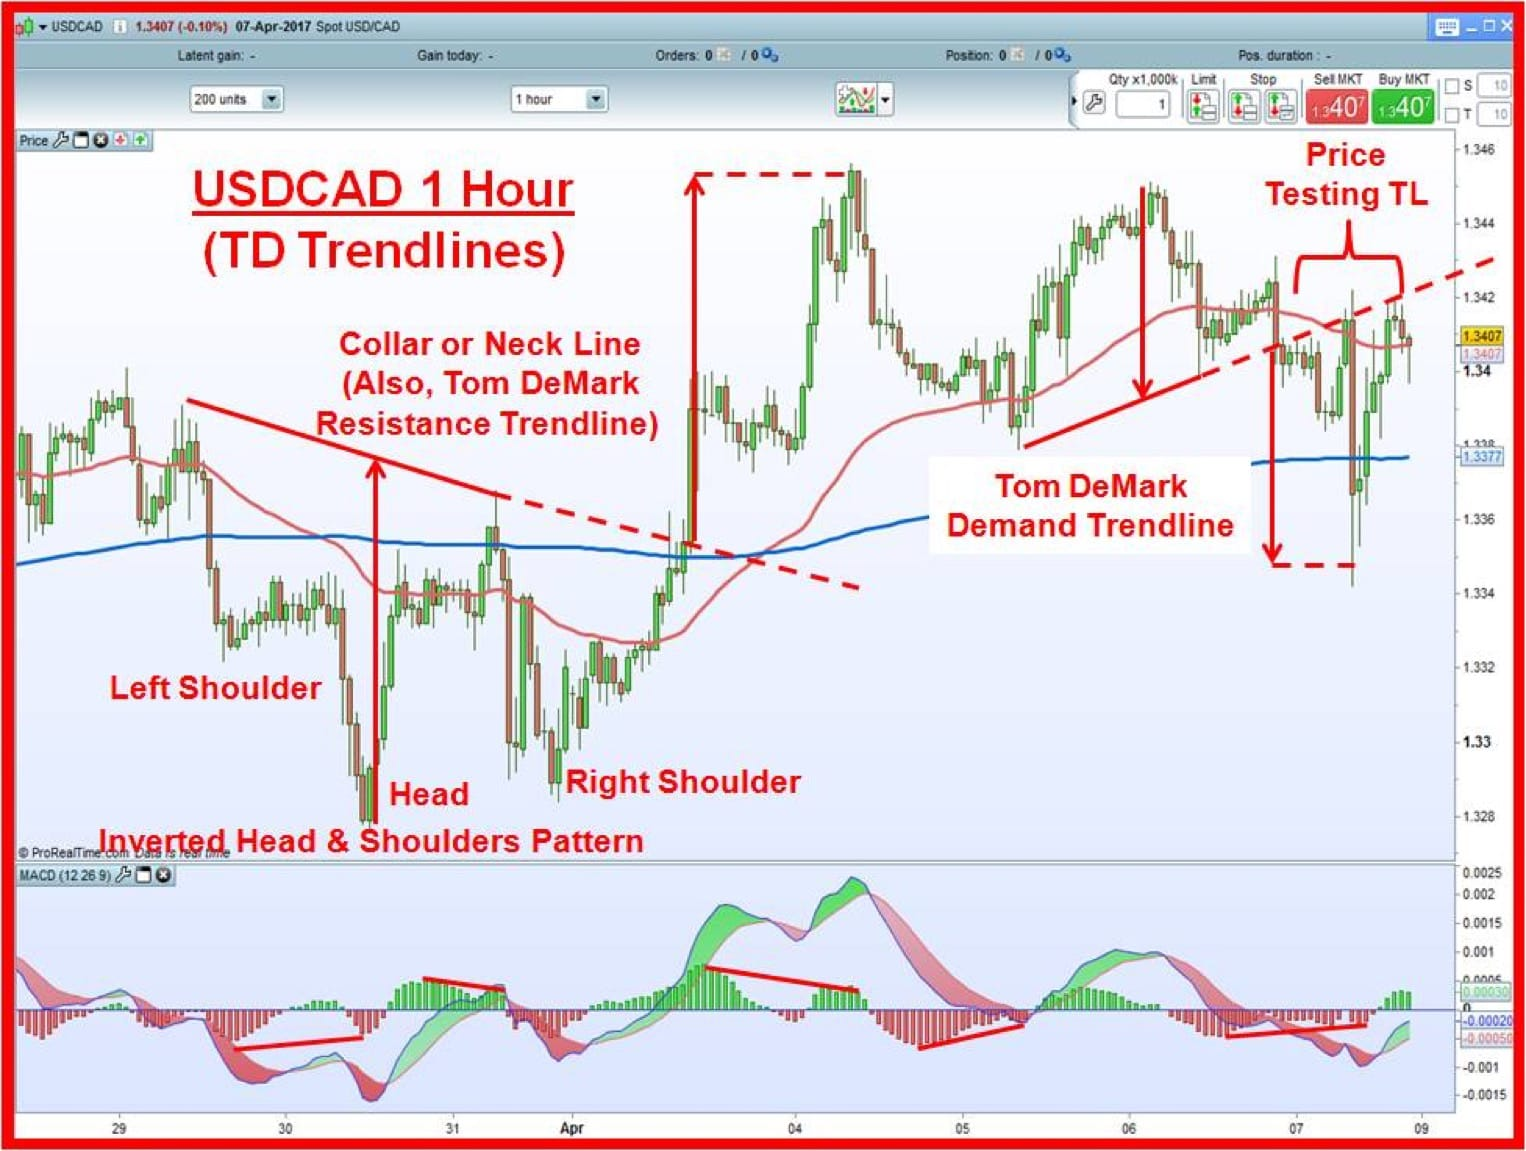 USDCAD 1 hour chart with inverted head and shoulders pattern & one demand & one resistance trendline.